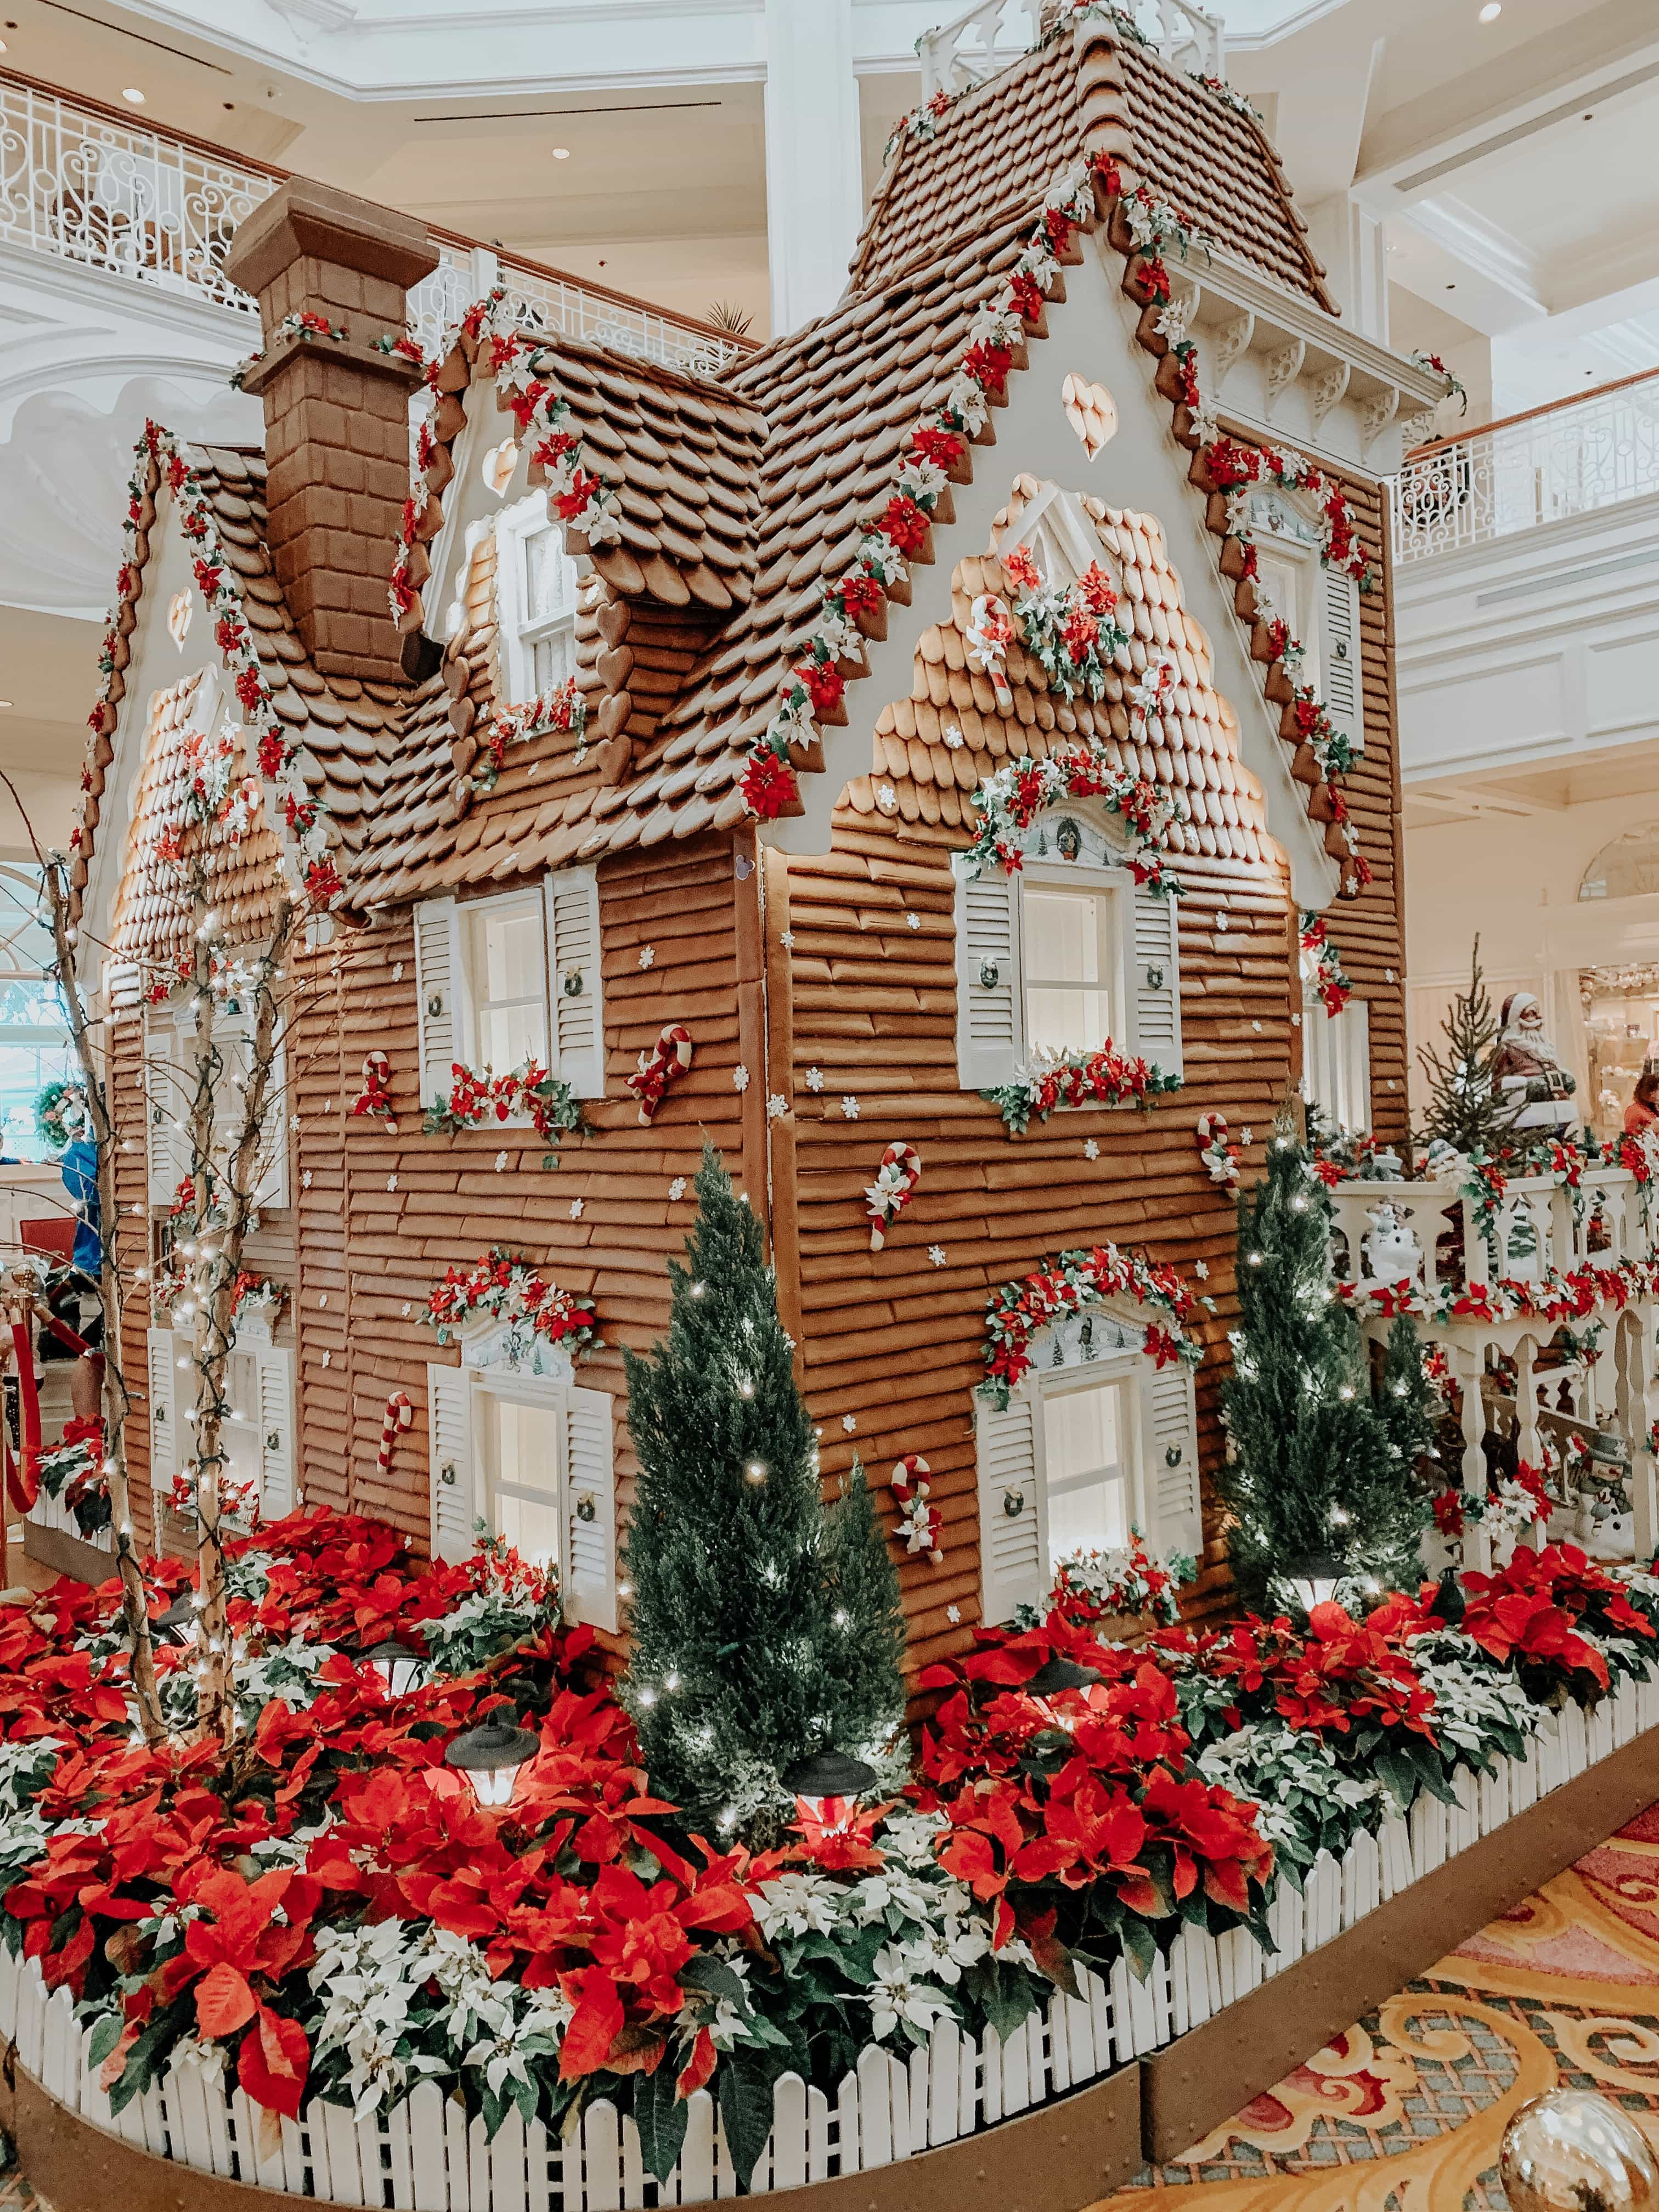 Christmas at Disney World: Grand Floridian Resort Gingerbread House